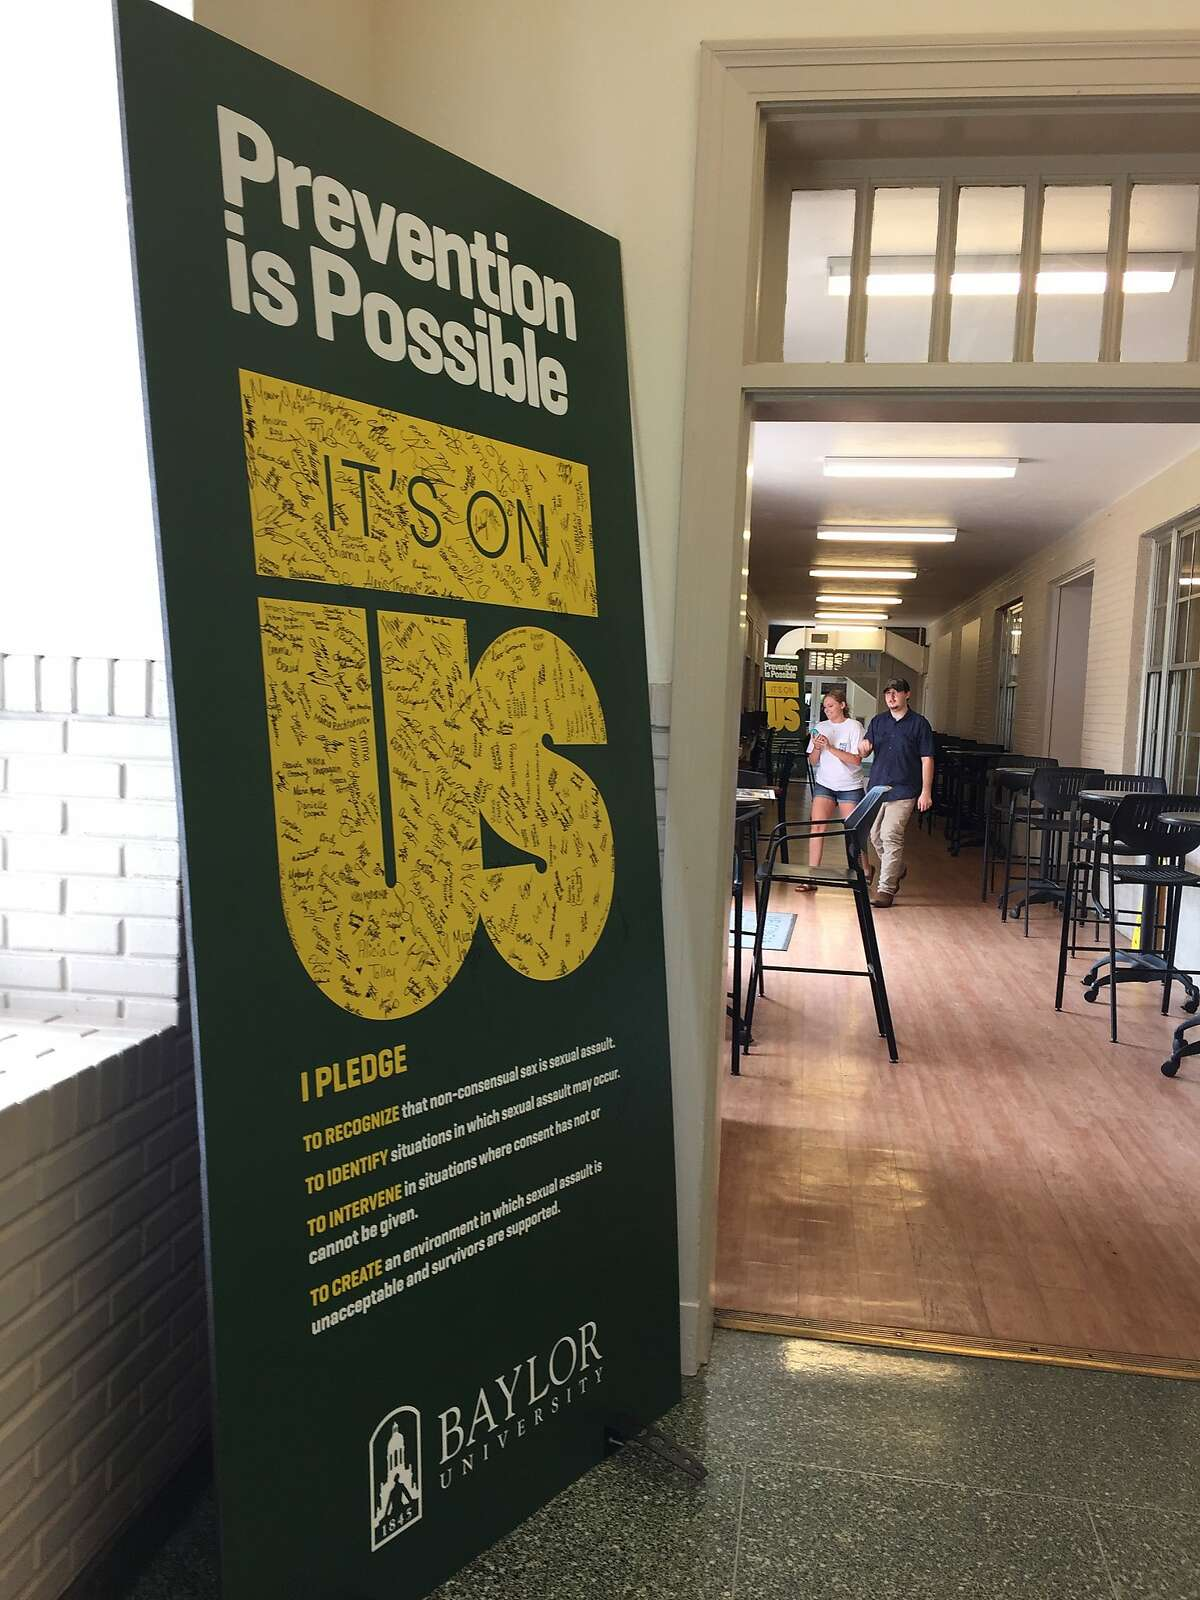 Students have met Baylor University's attempts to address rape on campus with mixed reaction, ranging from an embrace of self-accountability to frustration the university is shirking responsibility onto its students. Andrea Zelinsk/Houston Chronicle